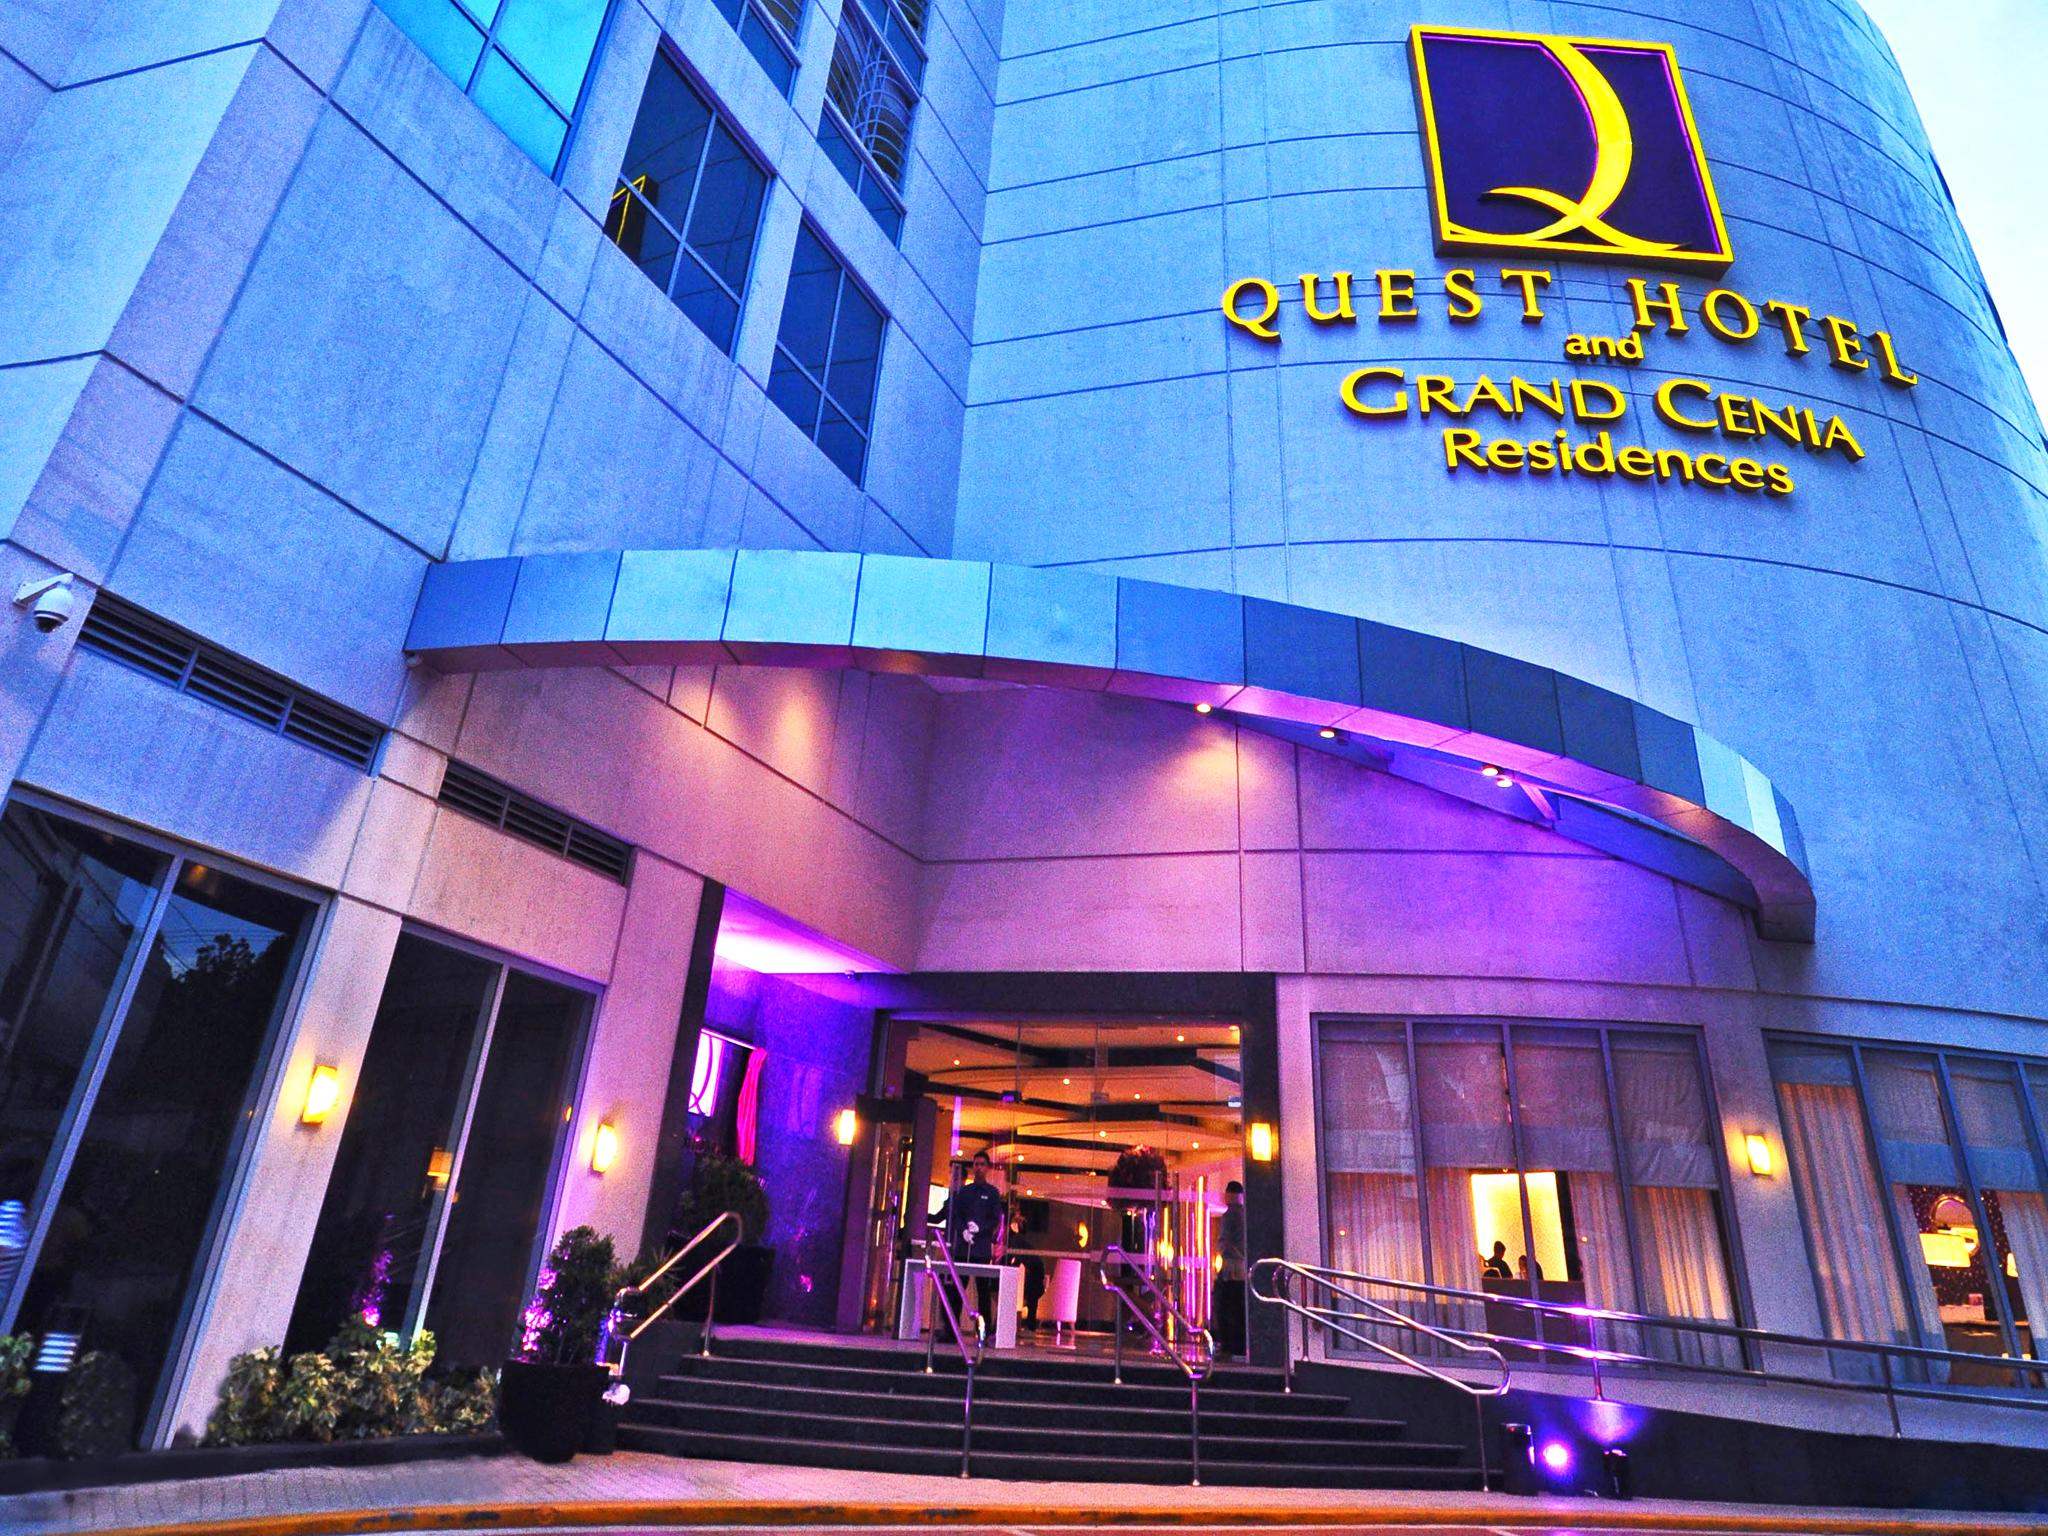 Quest-Hotel-Conference-Center-Cebu